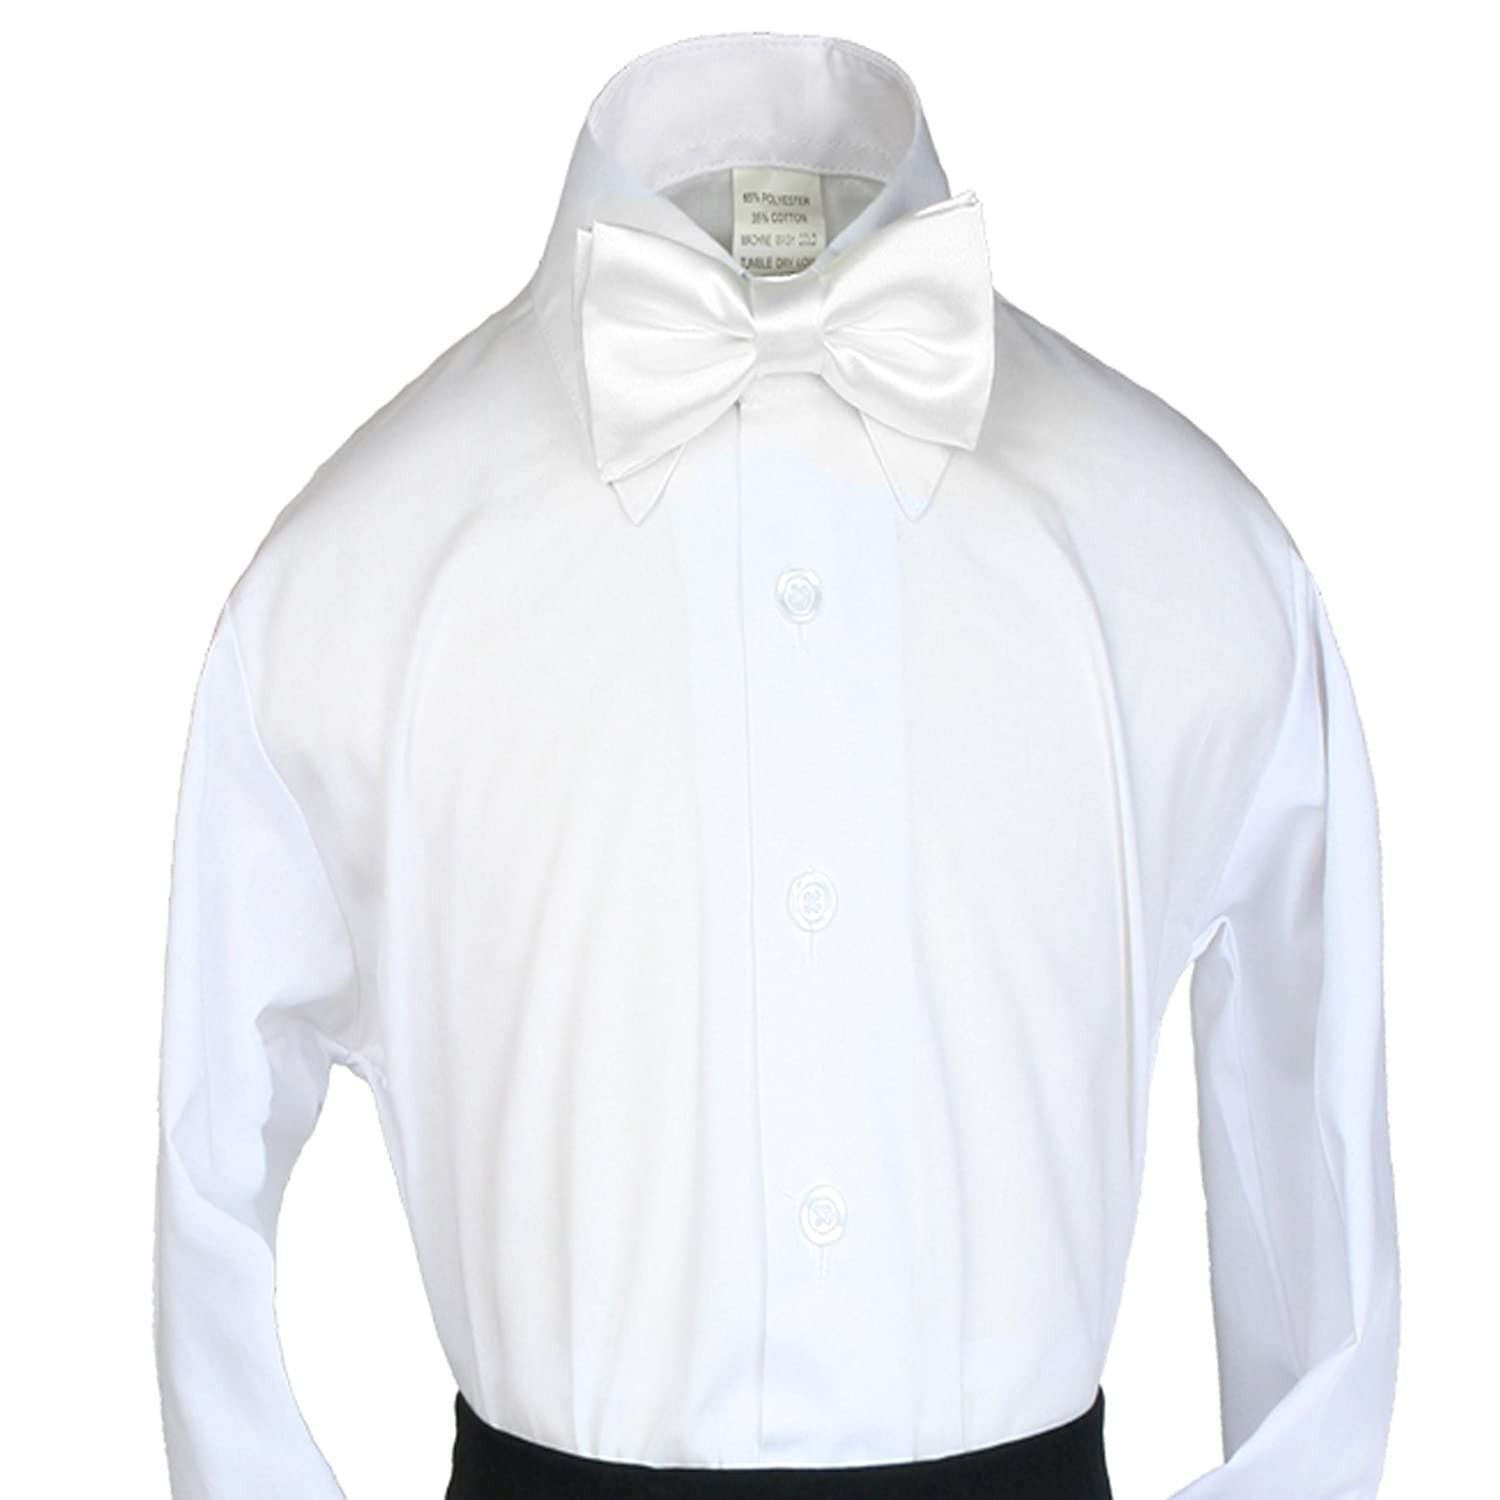 Unotux 2pc Boys Satin White Vest and Bow tie Set from Baby to Teen